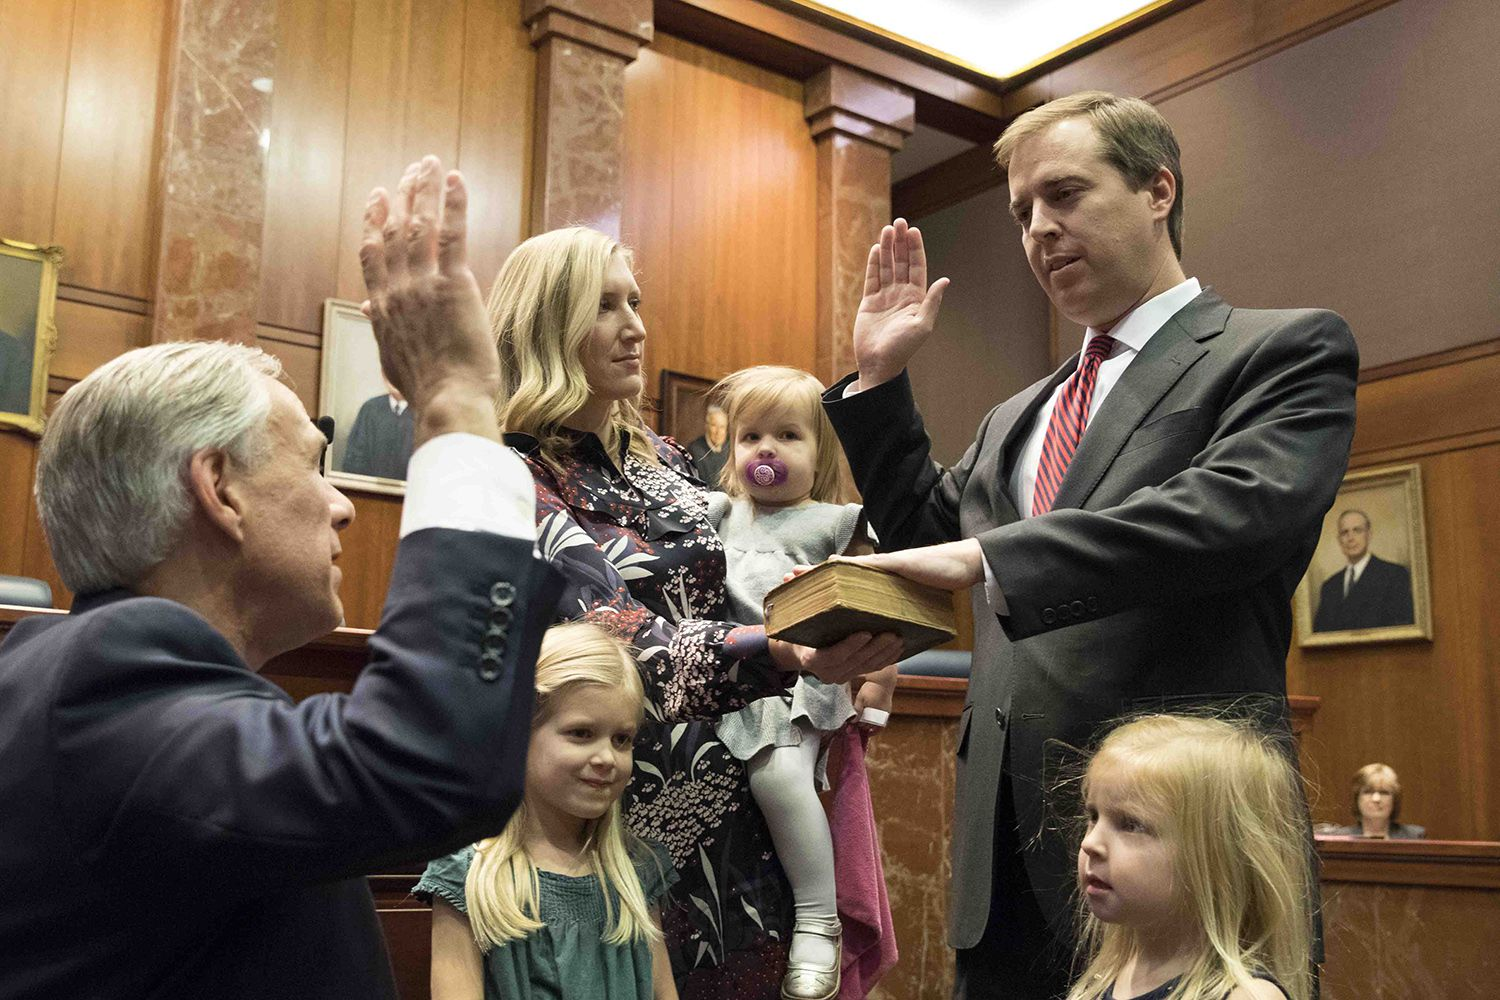 Gov. Greg Abbott swears in Jimmy Blacklock to replace Don Willett on the Texas Supreme Court on Tuesday, Jan. 2, 2017. Blacklock previously served as the governor's general counsel.